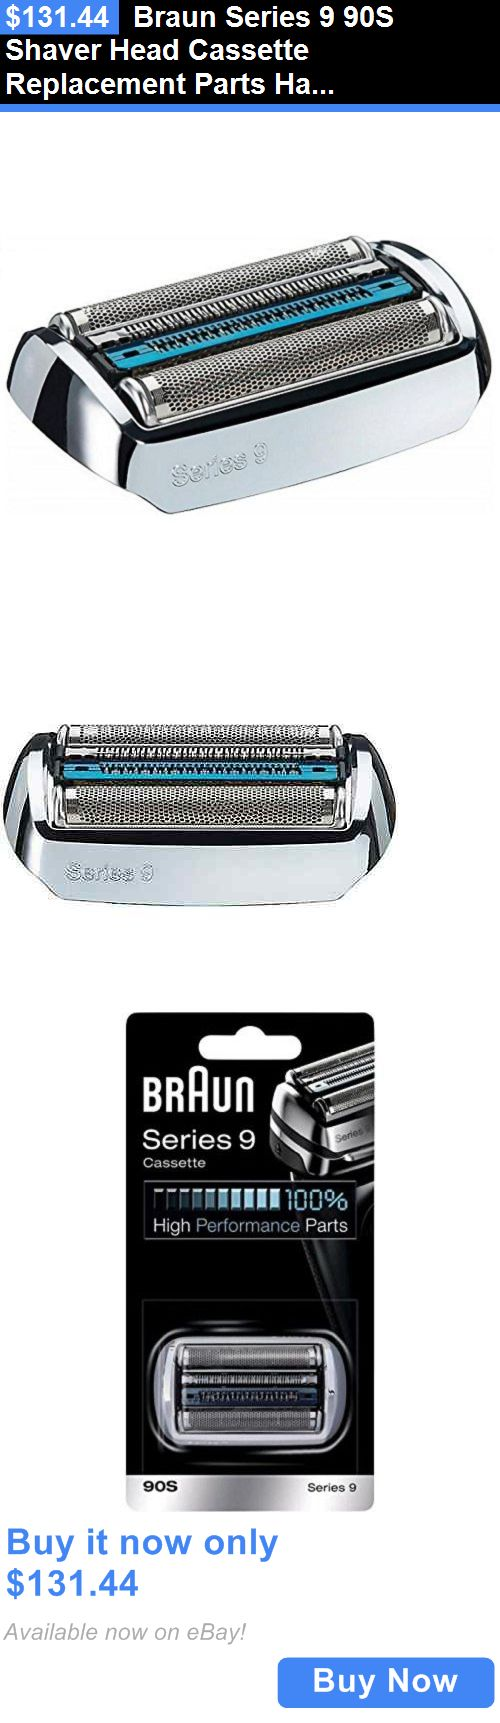 Shaver Parts and Accessories: Braun Series 9 90S Shaver Head Cassette Replacement Parts Hair Removal Supplies BUY IT NOW ONLY: $131.44